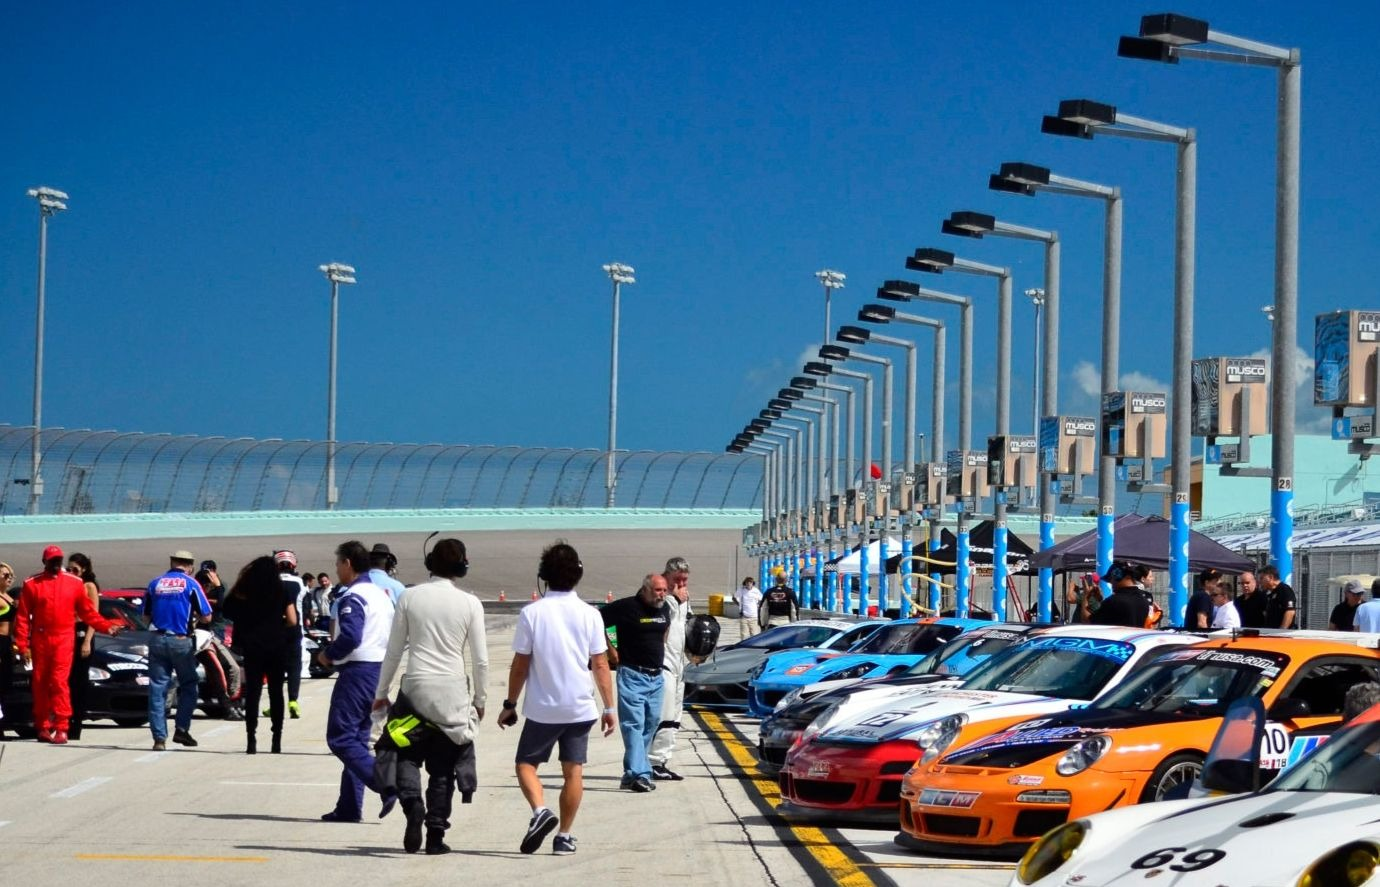 Homestead  Miami Speedway SCCA September 13-15, 2019